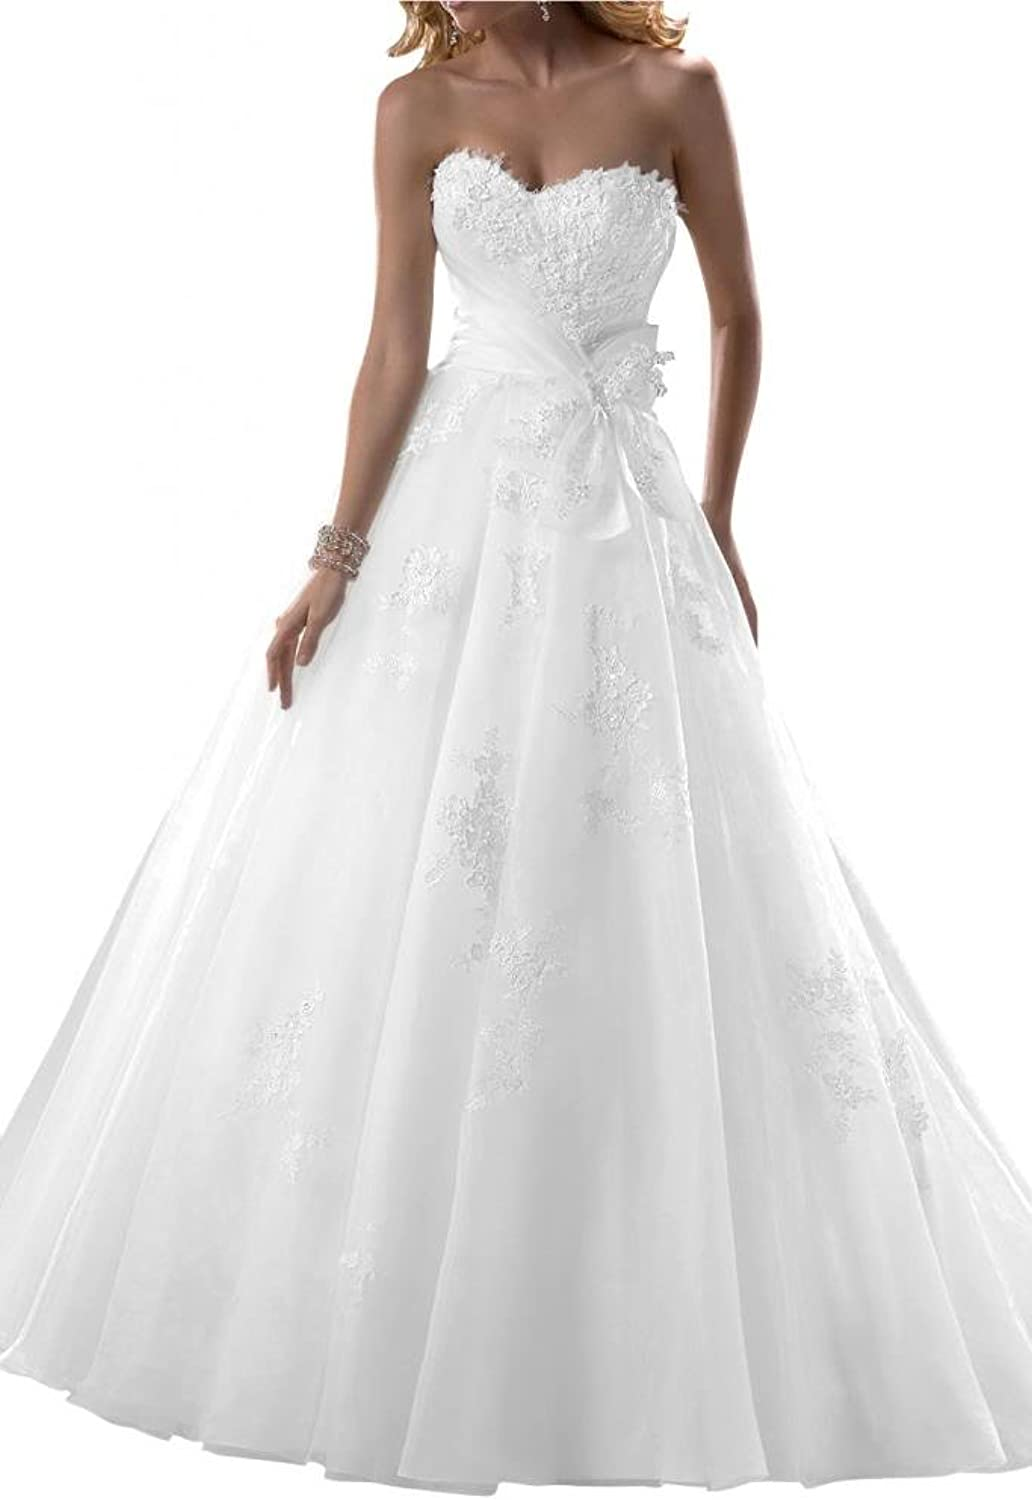 Angel Bride Sweetheart ALine Wedding Dresses Organza Long Dresses